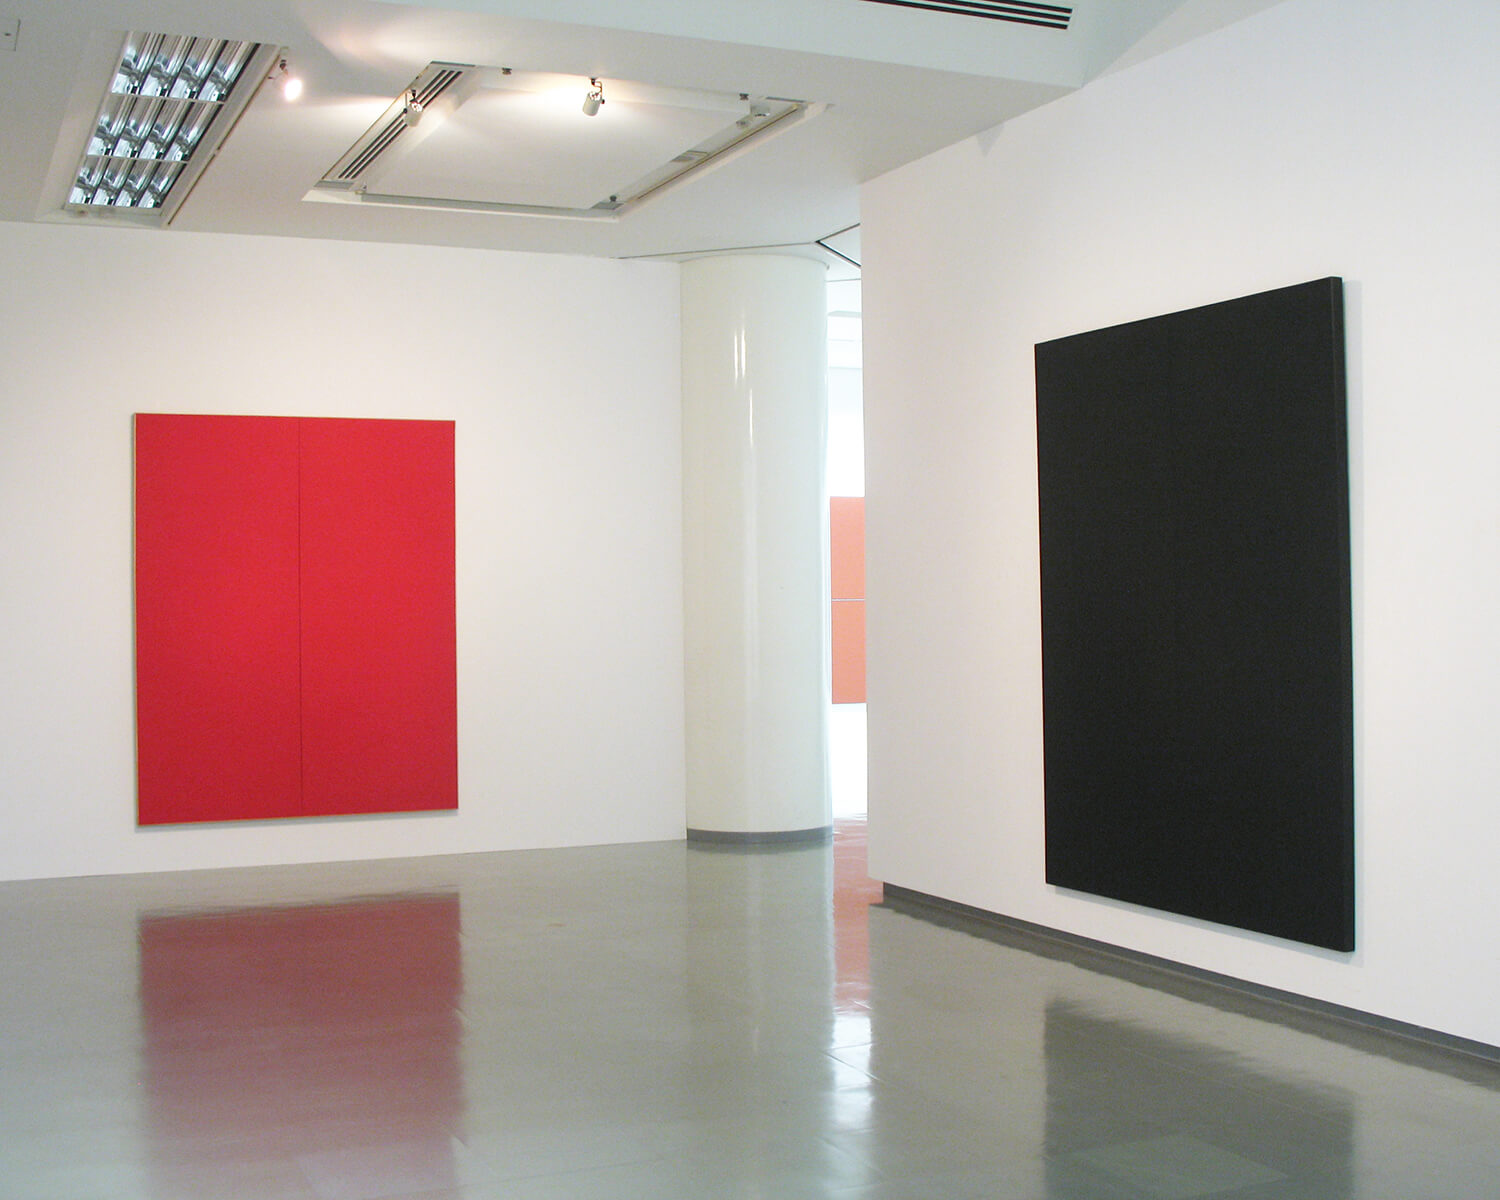 red 1961<br>acrylic, pigment on canvas (2 panels), 254.0 x 204.5 cm / col. Takamatsu City Art Museum (left)<br>black 1961<br>acrylic, pigment on canvas (2 panels), 254.0 x 203.5 cm / col. Kitakyushu Municipal Museum of Art (right)